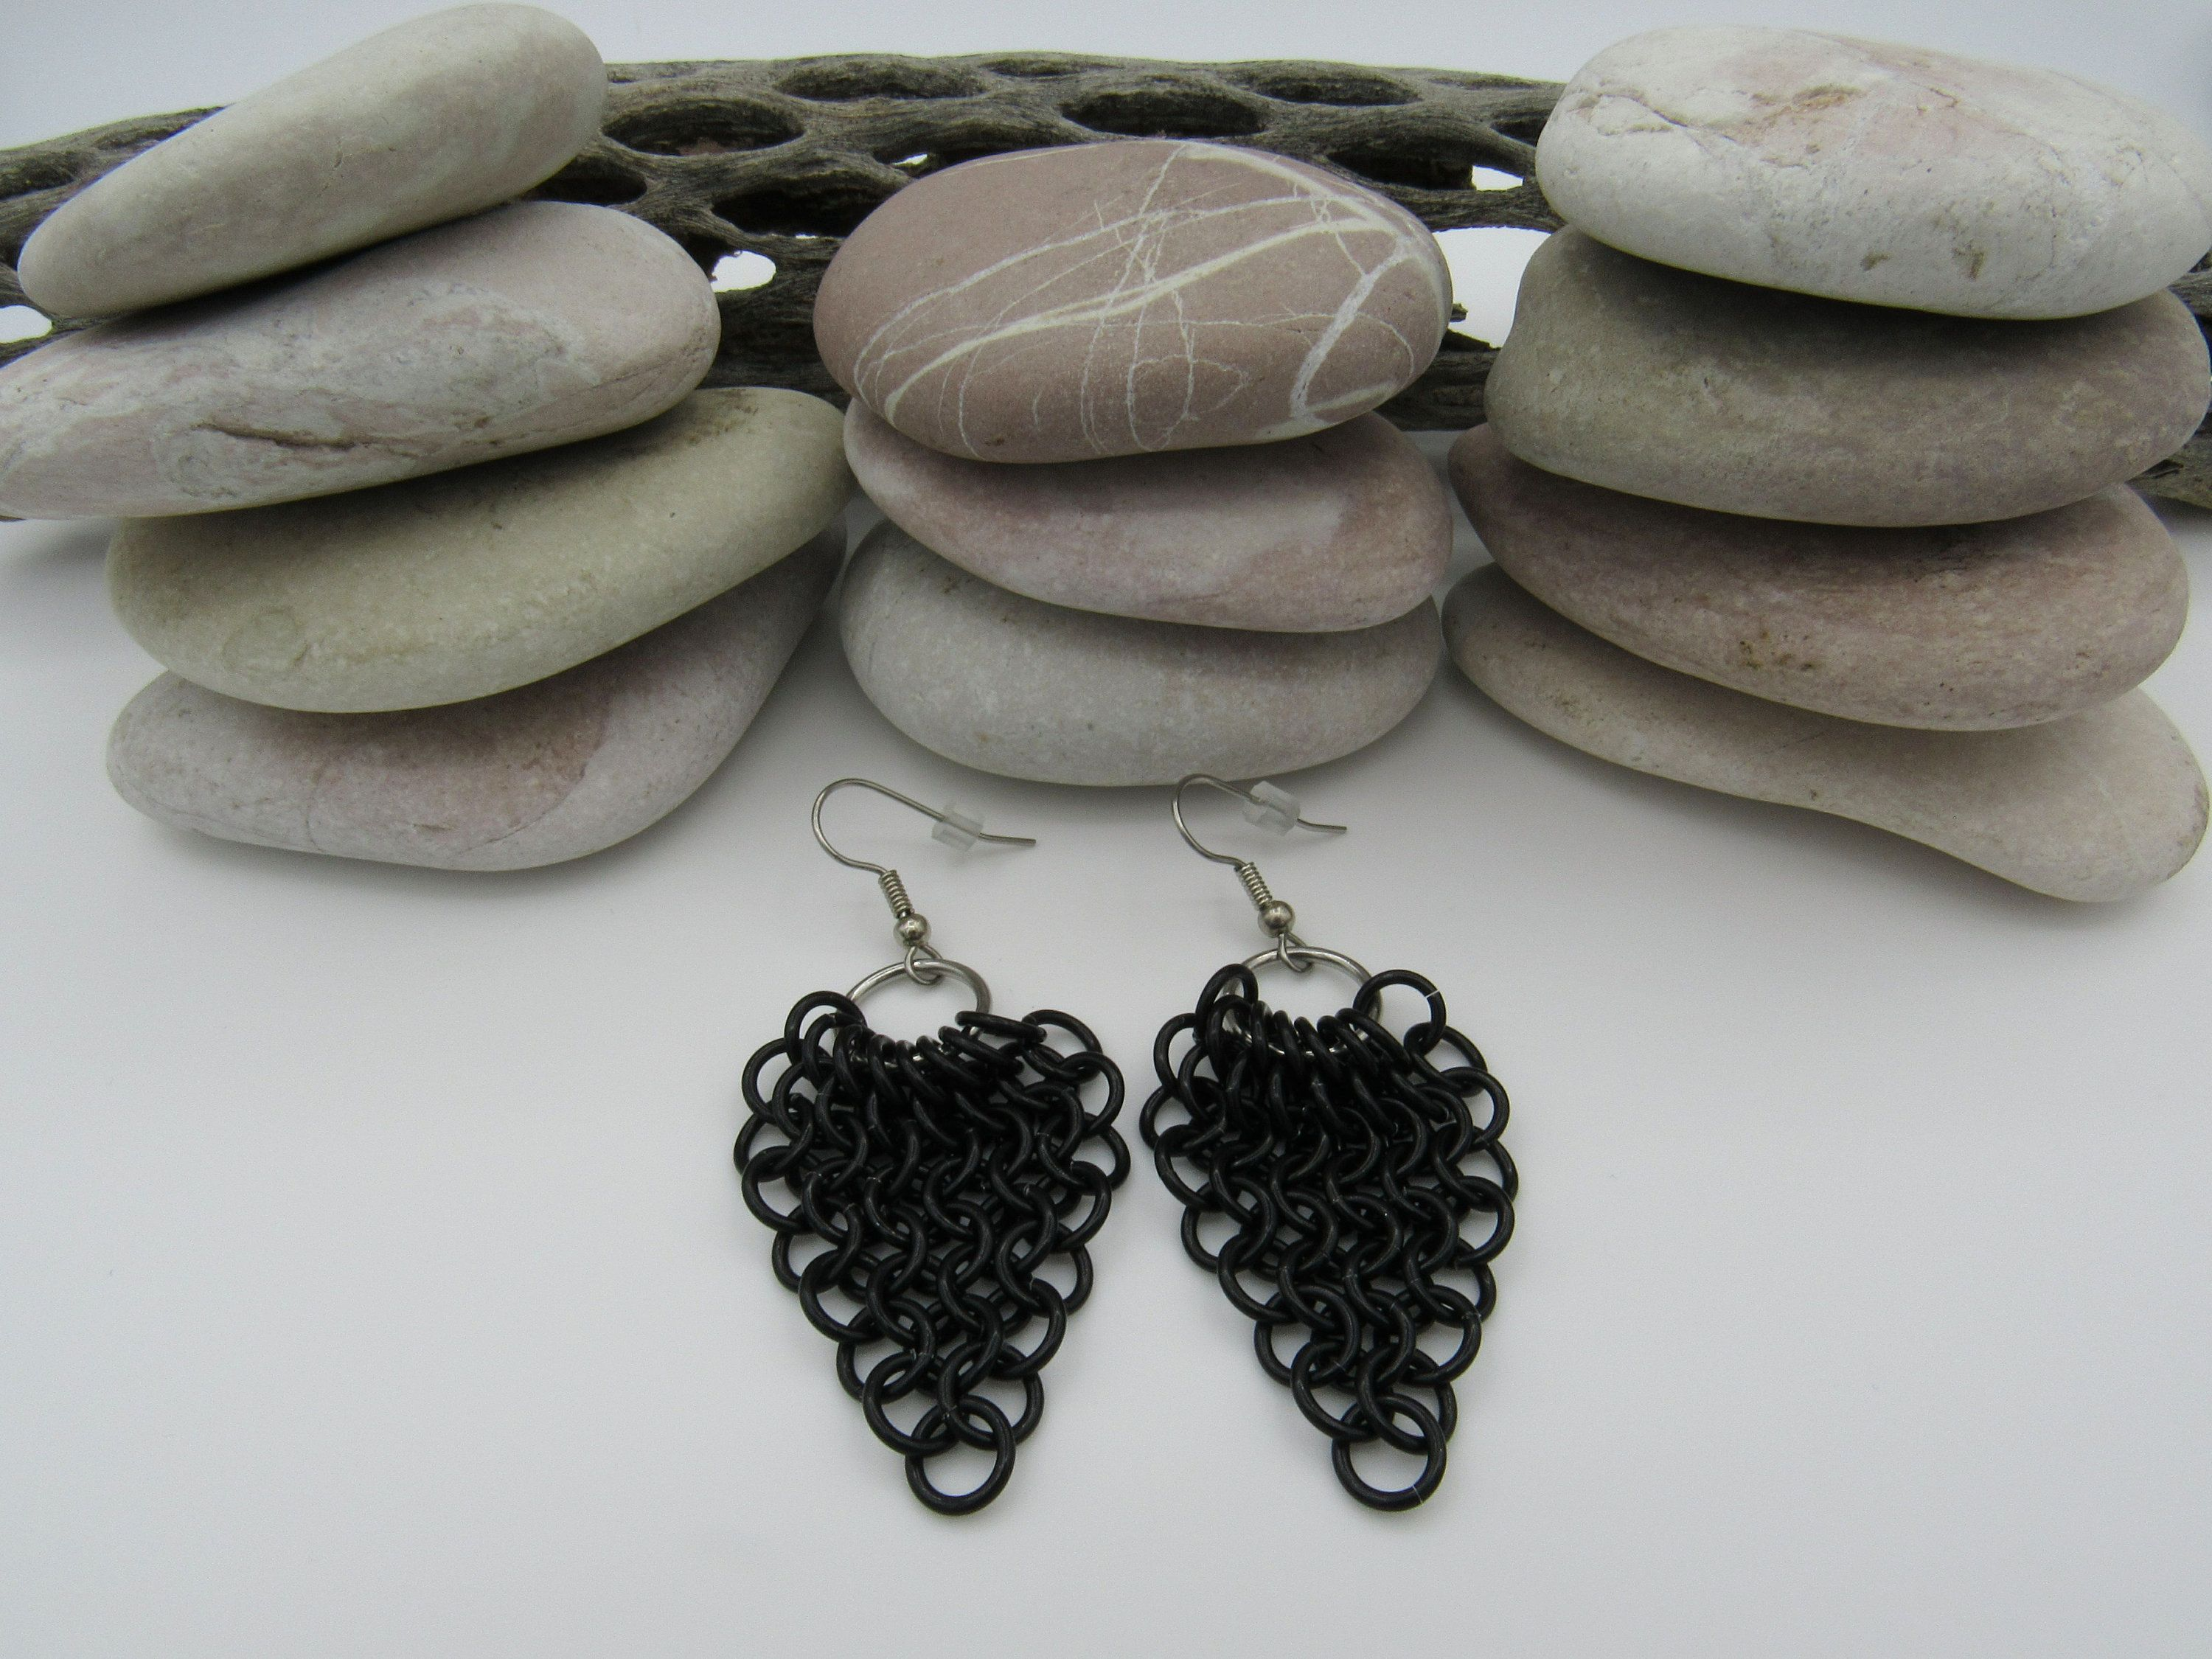 Black chainmail earrings, 10 year anniversary gift for her